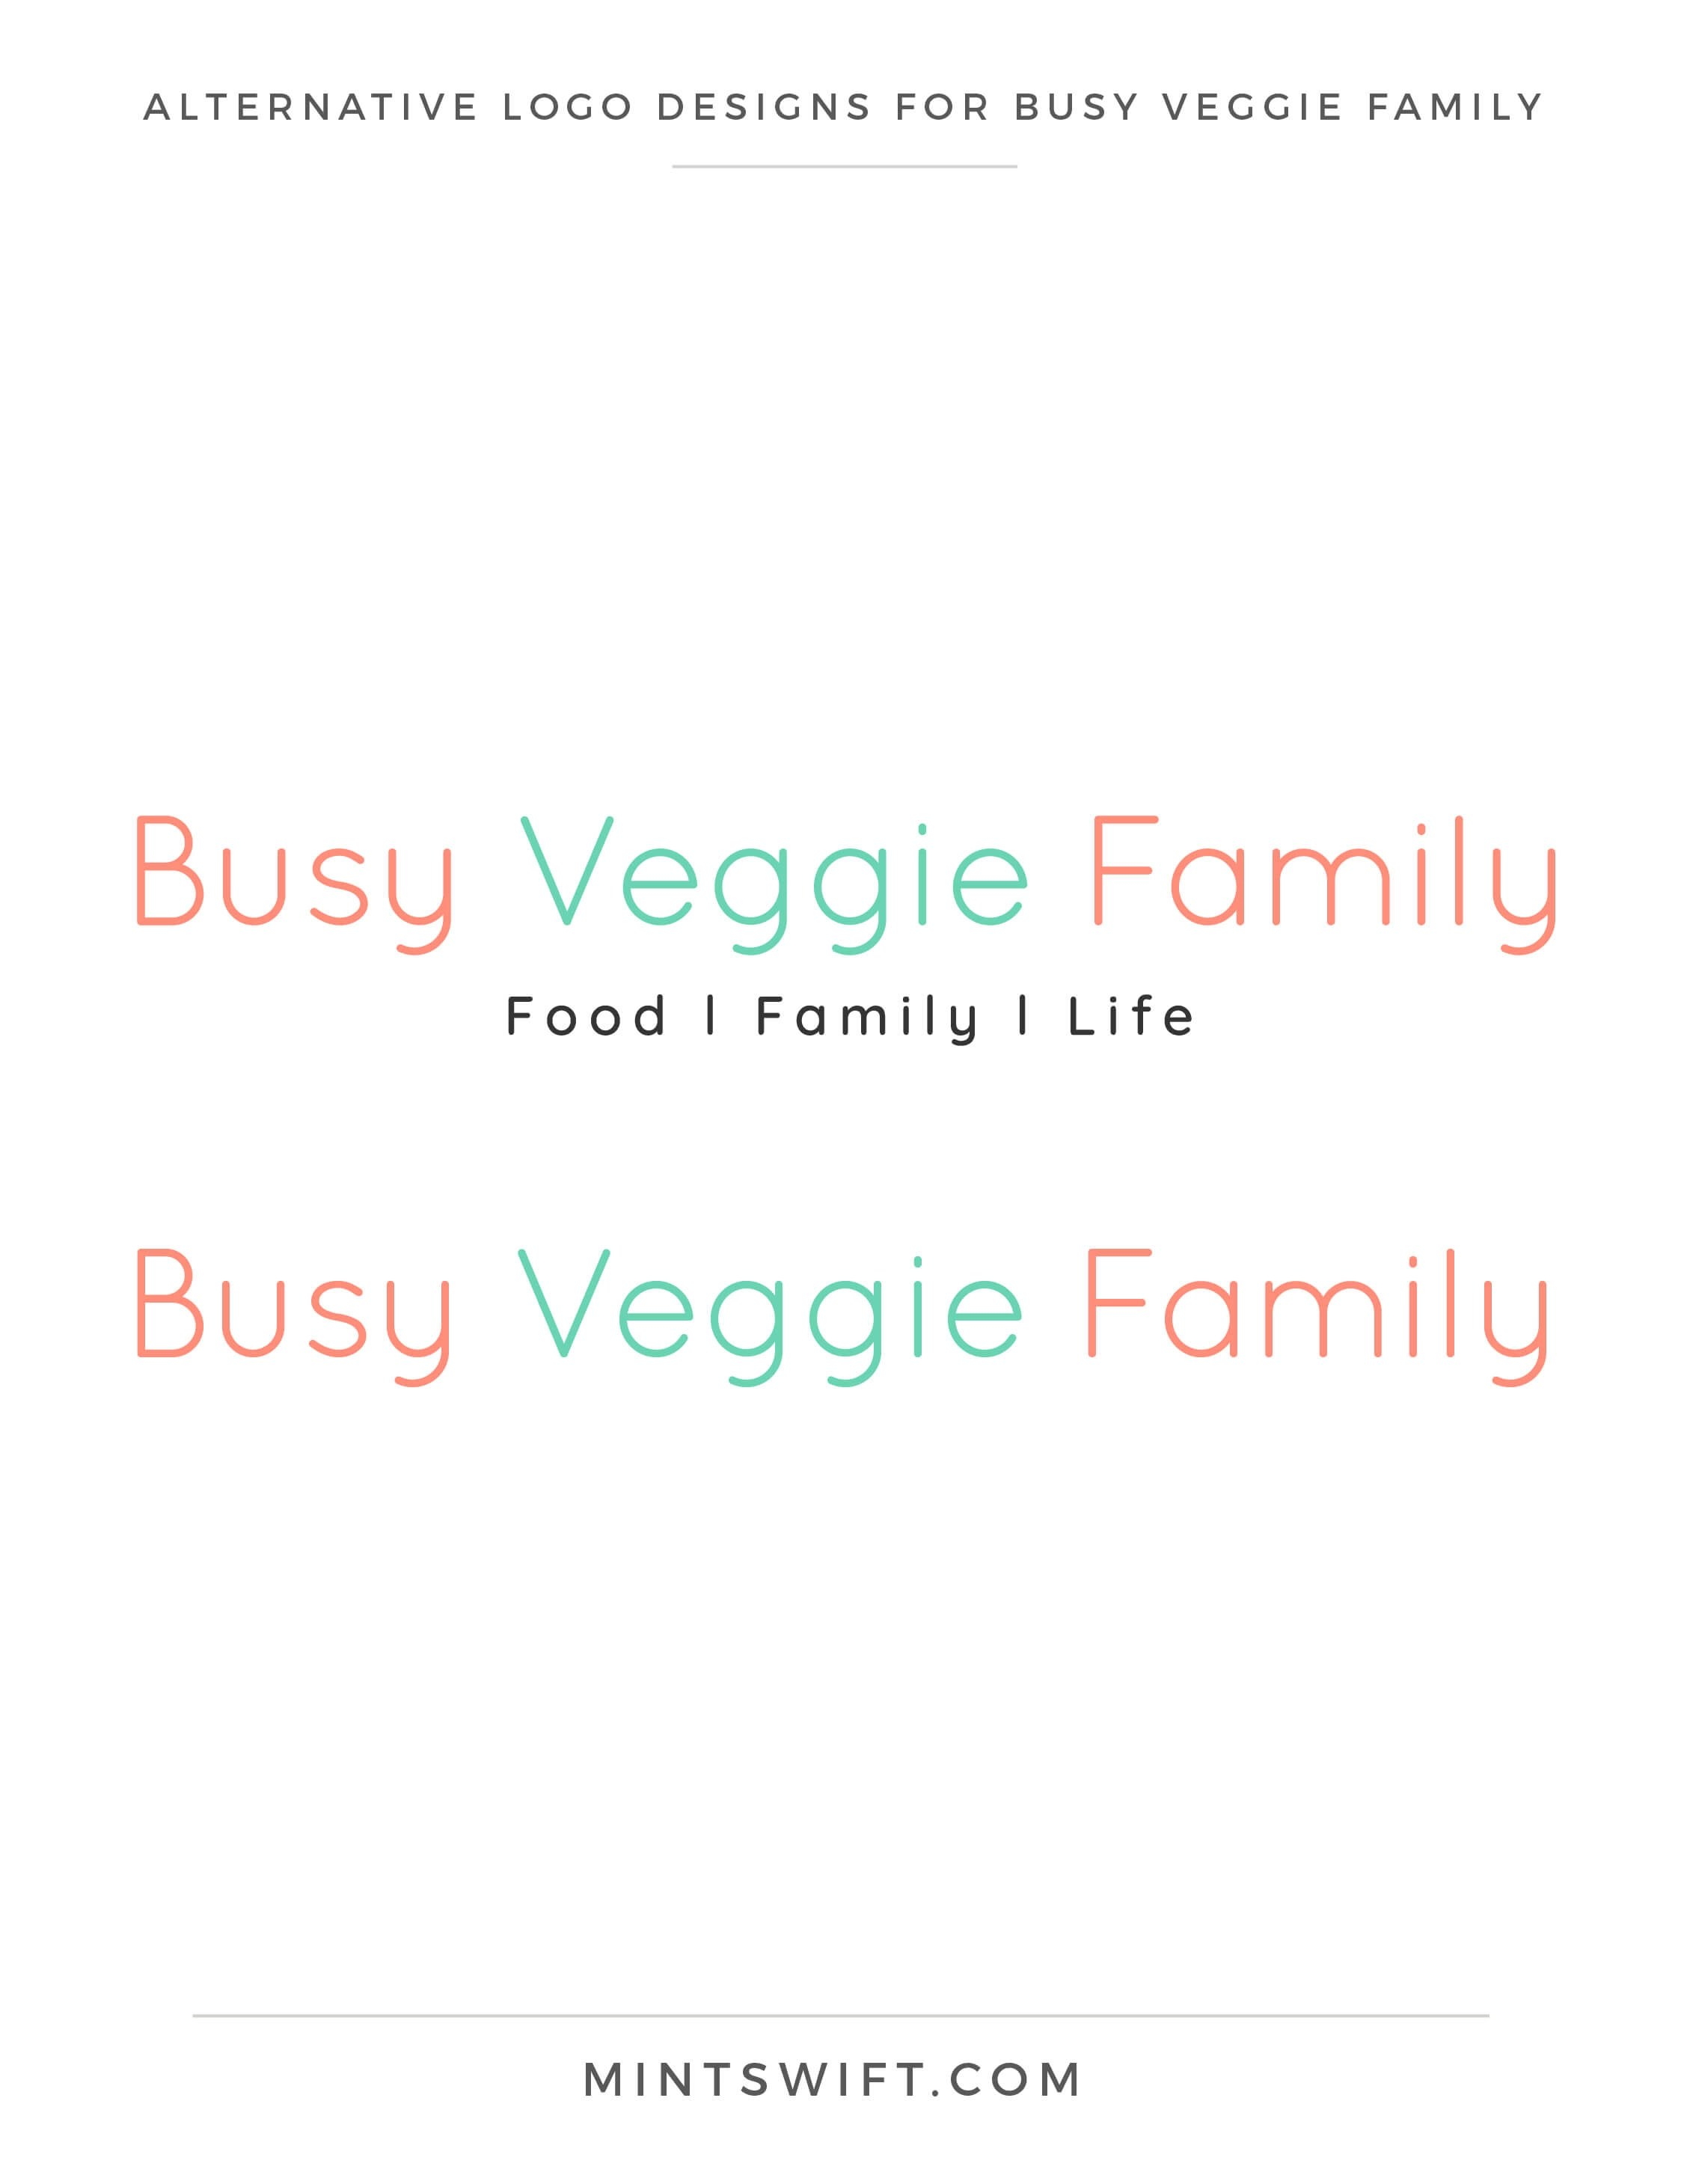 Busy Veggie Family - Alternative Logo Designs - Brand & Website Design Package - MintSwift